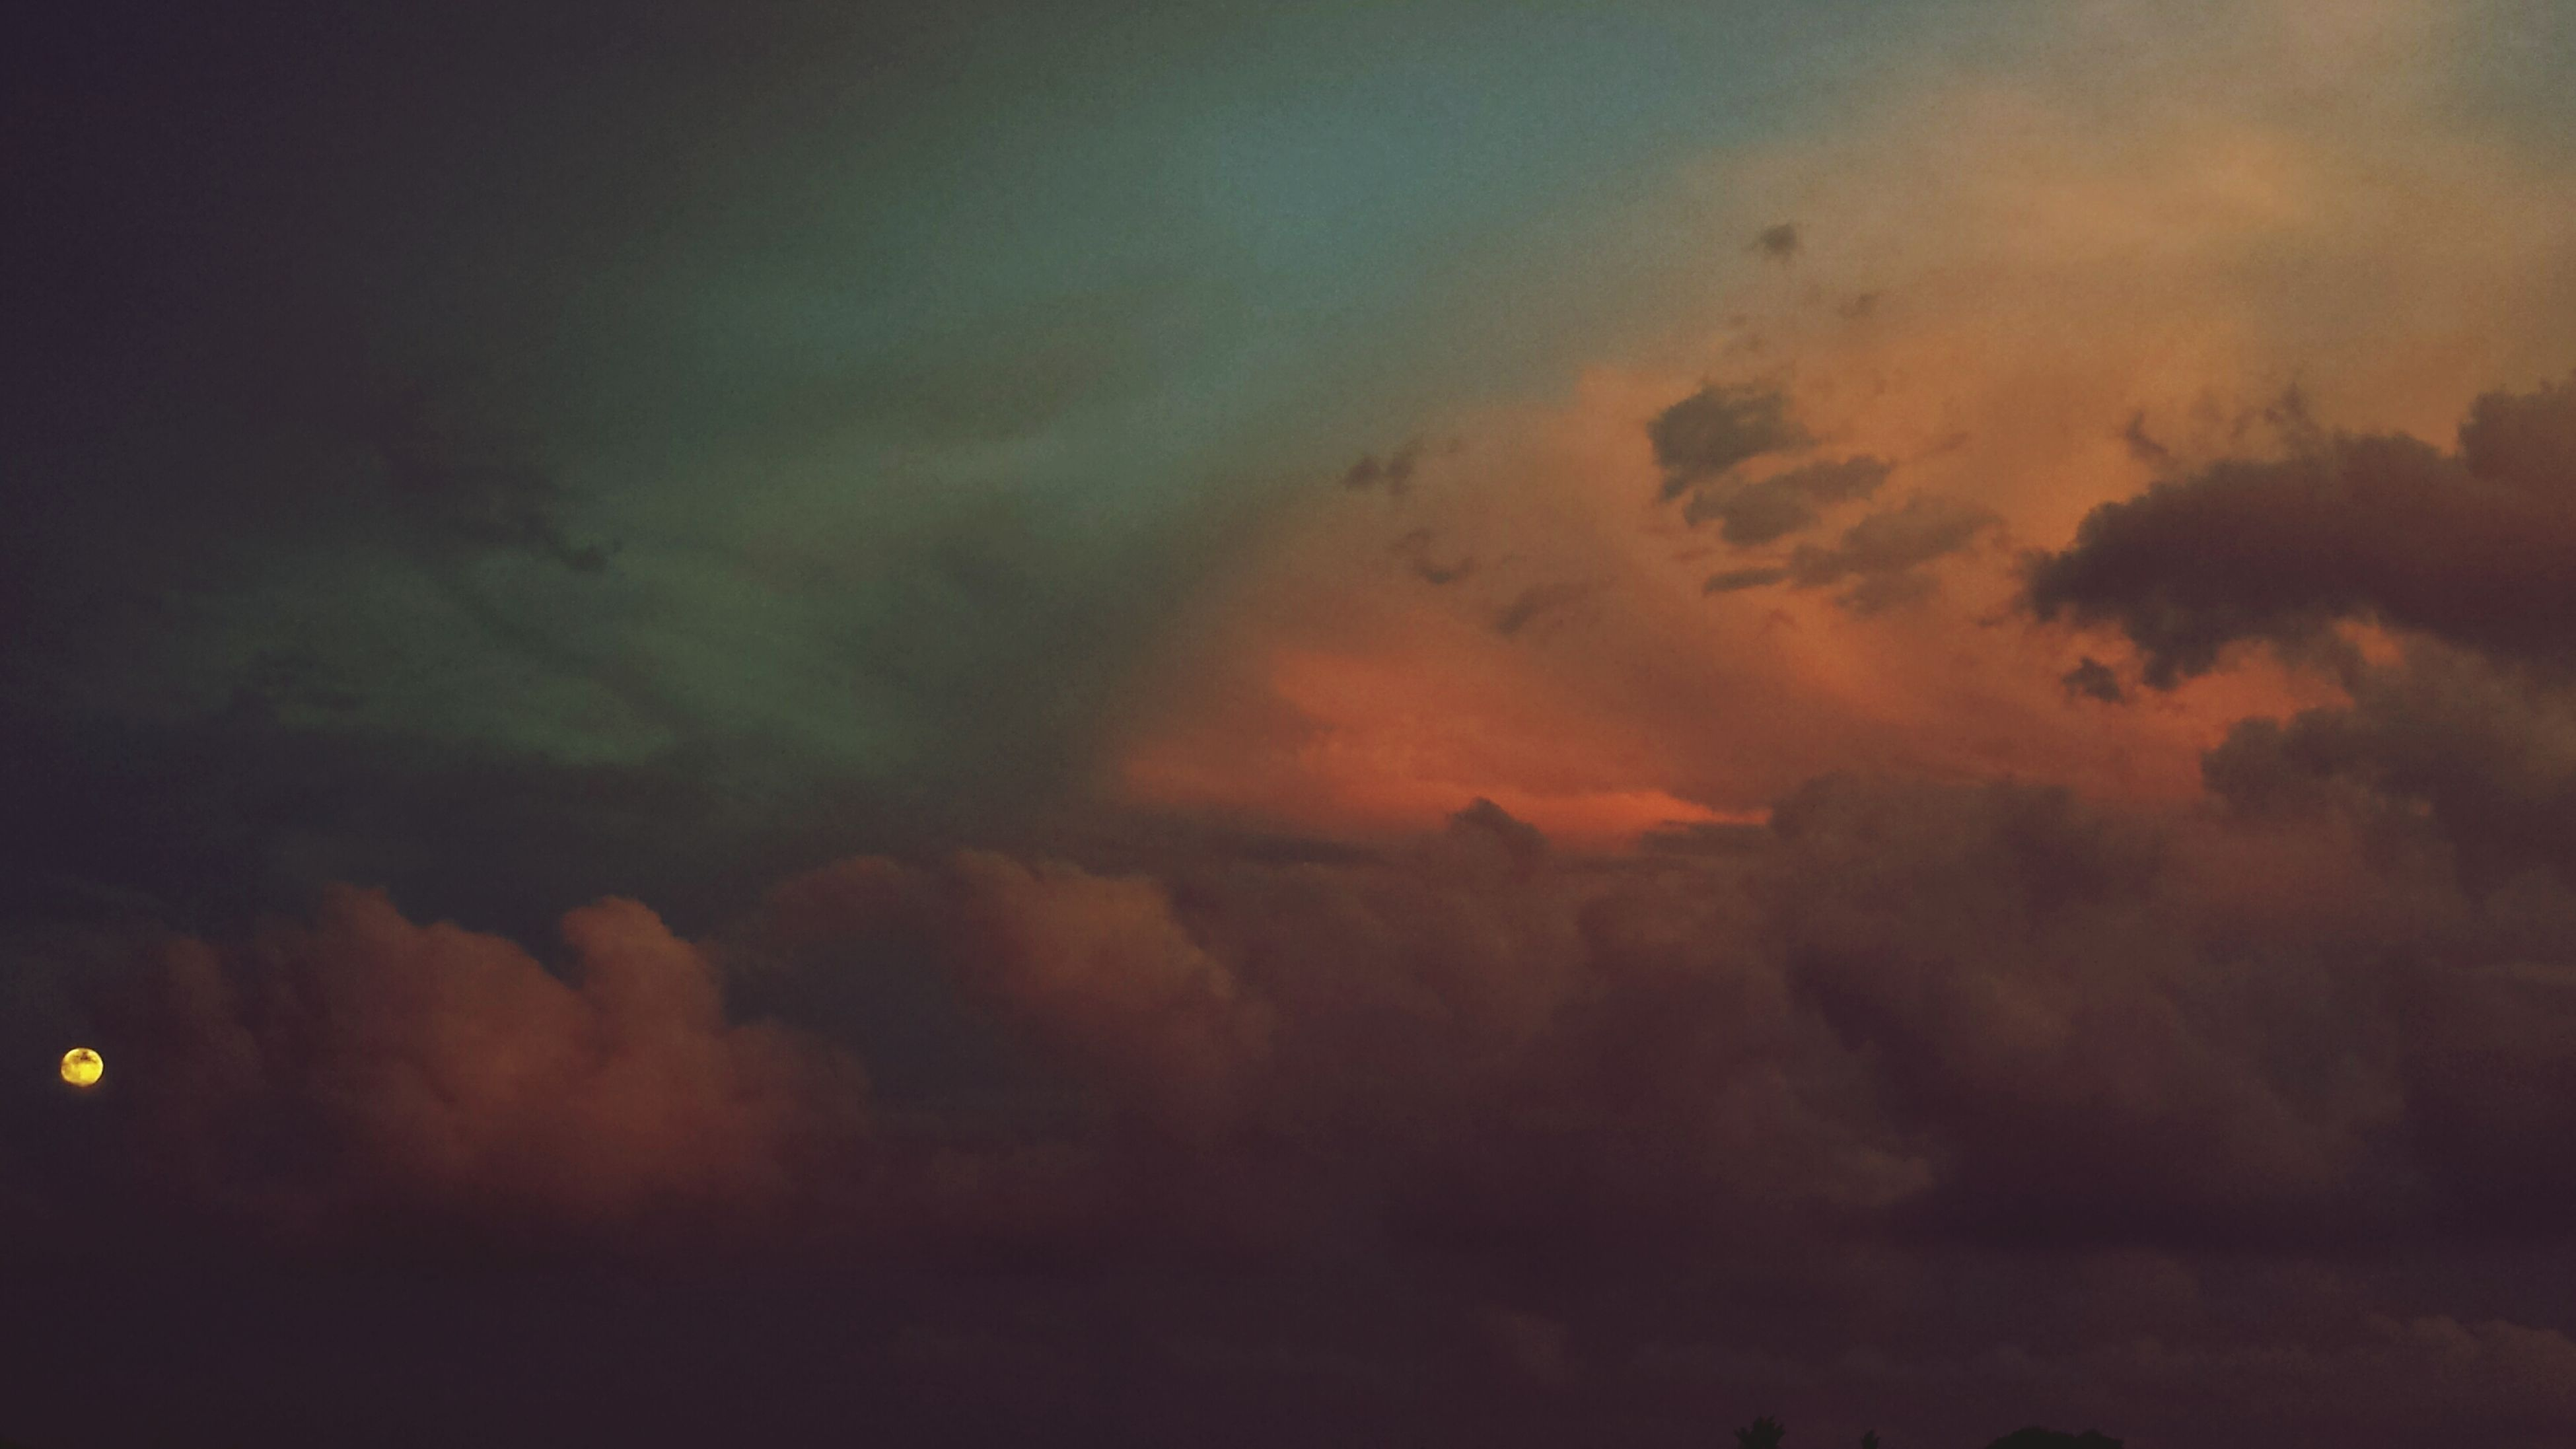 sky, cloud - sky, scenics, beauty in nature, sunset, tranquility, tranquil scene, cloudy, dramatic sky, weather, nature, low angle view, idyllic, cloudscape, overcast, silhouette, orange color, sky only, storm cloud, atmospheric mood